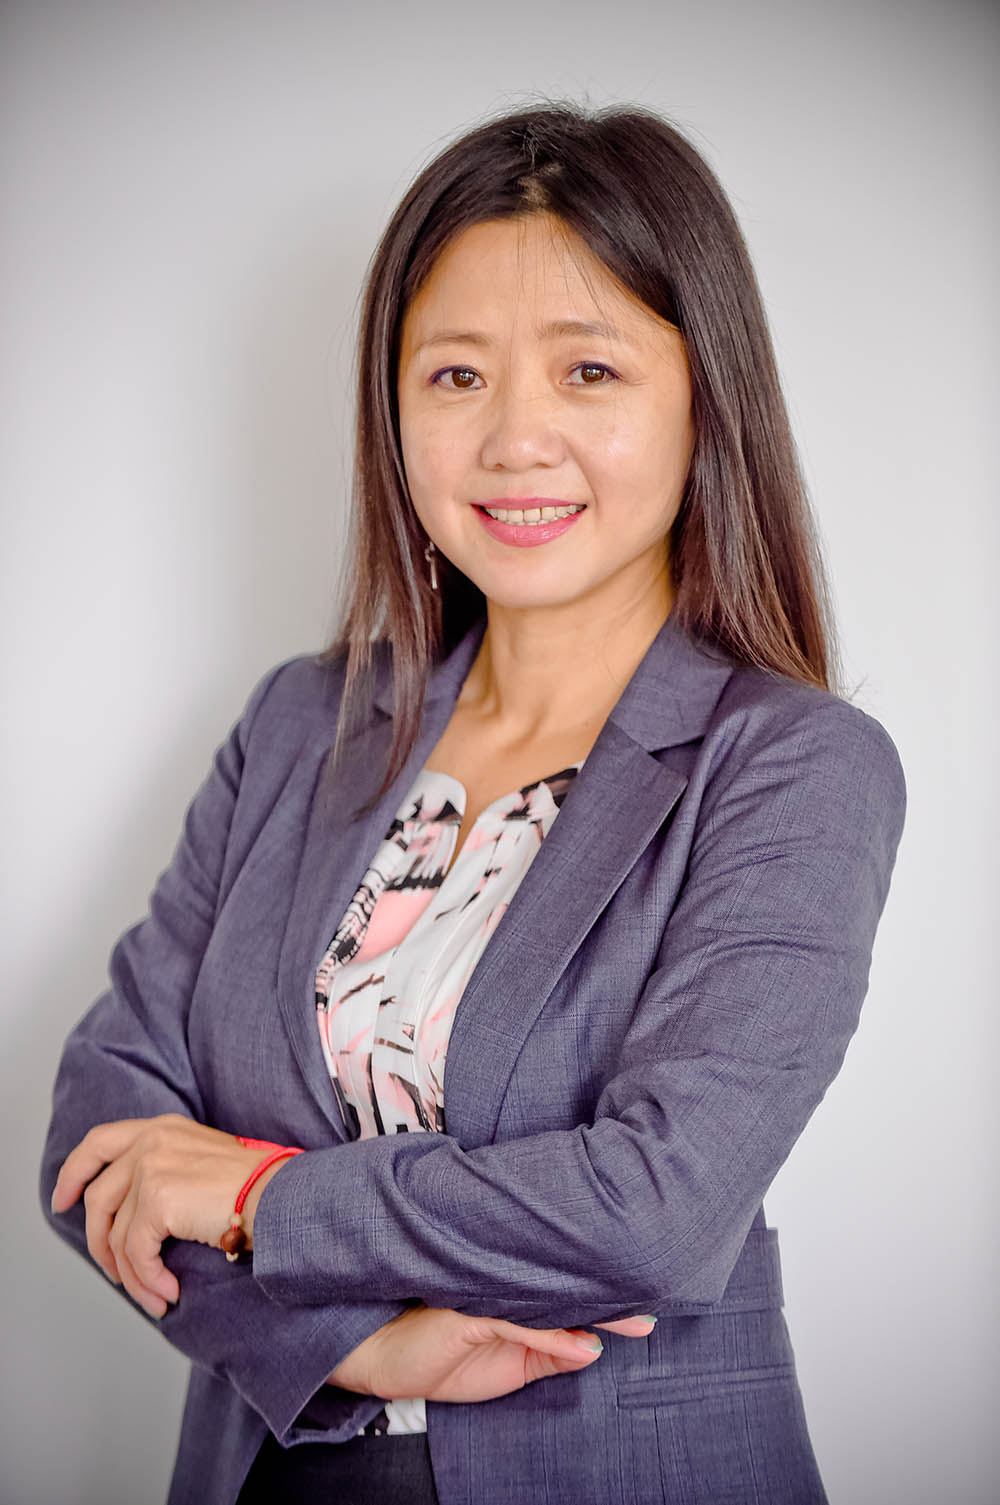 Hanna Wang, cfa |Senior Advisor - Hanna Wang is a Senior Advisor to Arcis Capital Partners LLC and its affiliates. She is based in Shanghai, China.Hanna is also the Managing Partner of HuaYu family office investments where she has participated in over U$300M of cross-border investment transactions.Previously, she worked at UBS private bank as a Director both in Canada and China overseeing wealth management for family offices and high net wealth individuals. Prior to that, she worked with RBC Dominion Securities as an investment advisor.Hanna is a seasoned investment and wealth management professional with strong analytical, risk management and portfolio management skills. Hanna has comprehensive experience in investment, private banking, financial planning and business development.Hanna received her undergraduate in Economics and Management from Sichuan University in China, an MBA in Finance from McMaster University in Canada, and then became a CFA charter holder in 2007.